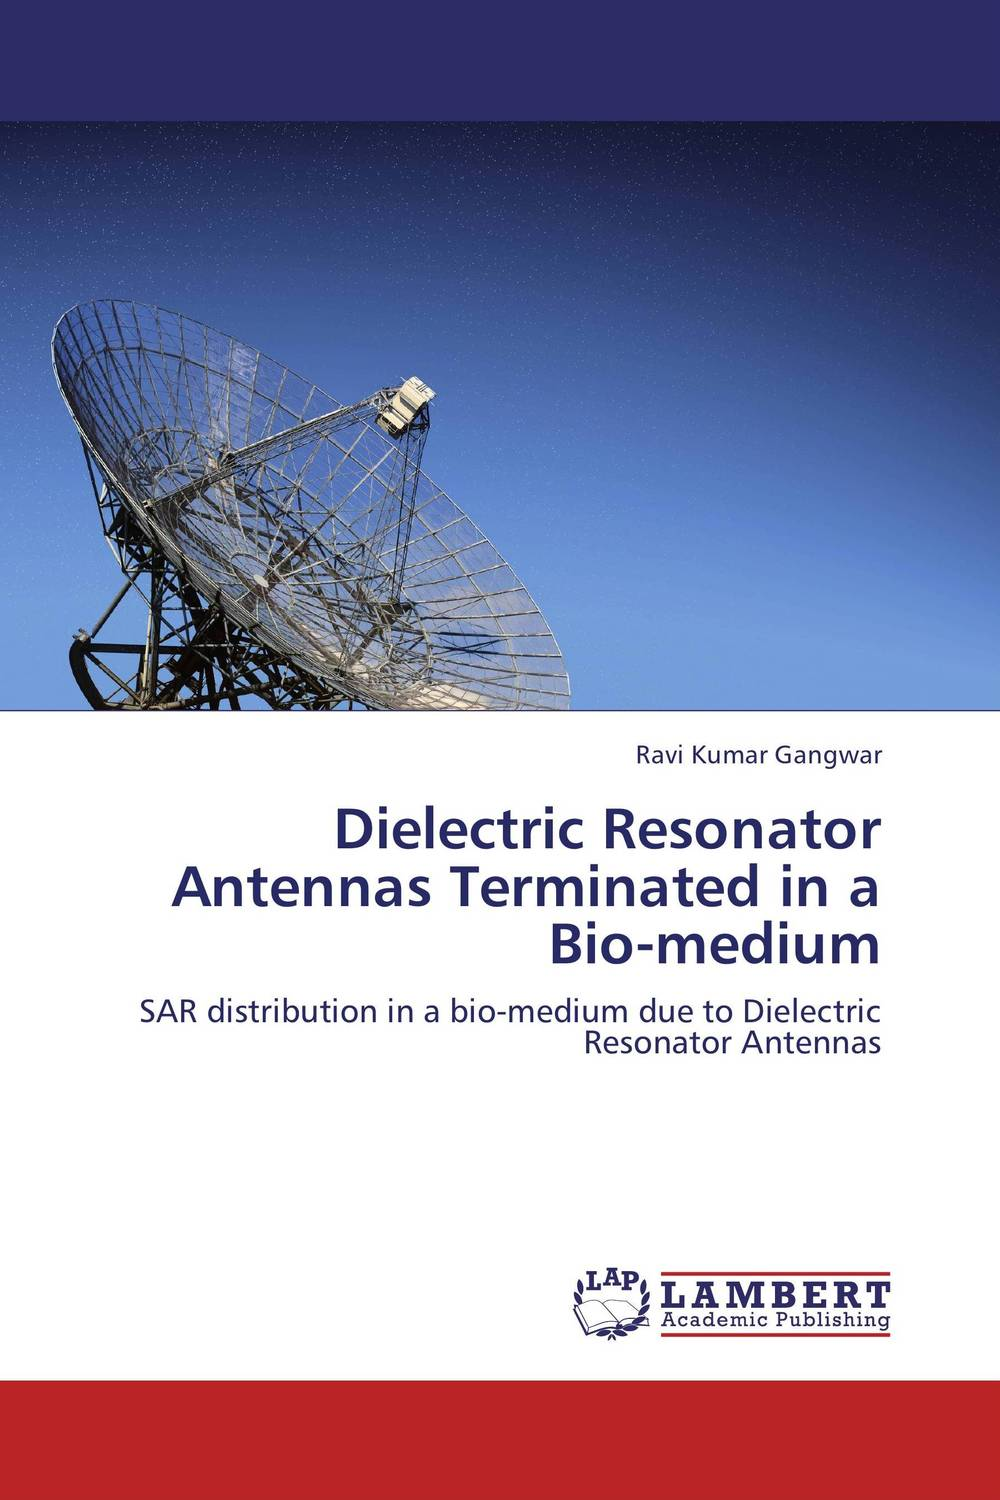 Dielectric Resonator Antennas Terminated in a Bio-medium boscam 5 8ghz cloud spirit antennas txa and rxa a pair in one set multicolored